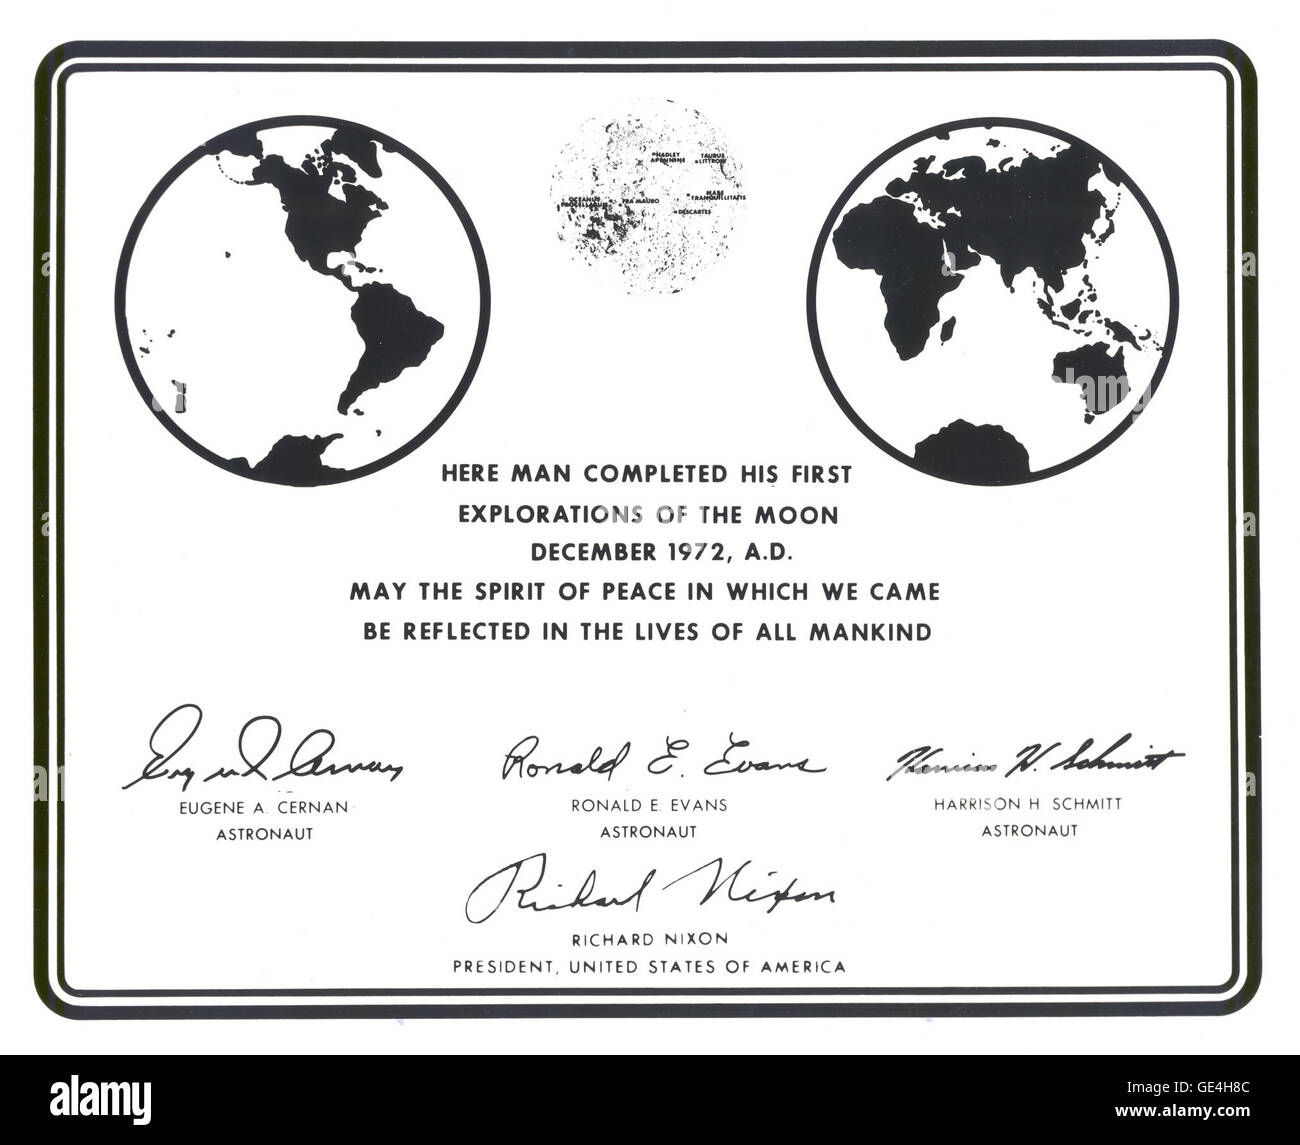 (December 12, 1972) This image is a photographic replica of the plaque that the Apollo 17 astronauts left on the - Stock Image